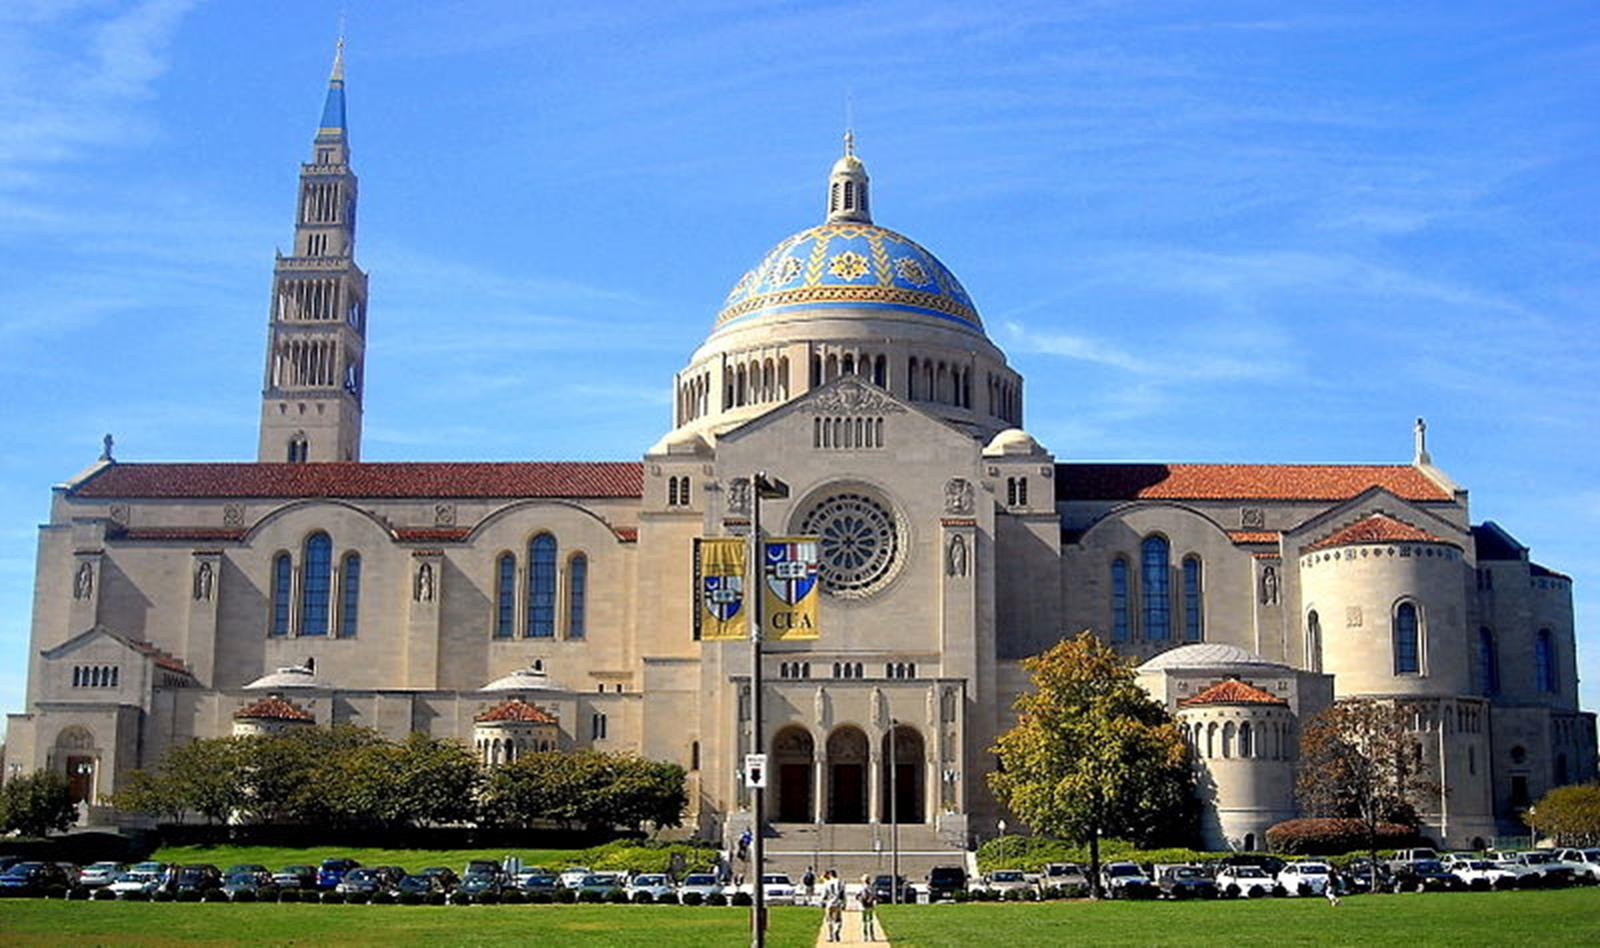 The National Shrine of the Immaculate Conception